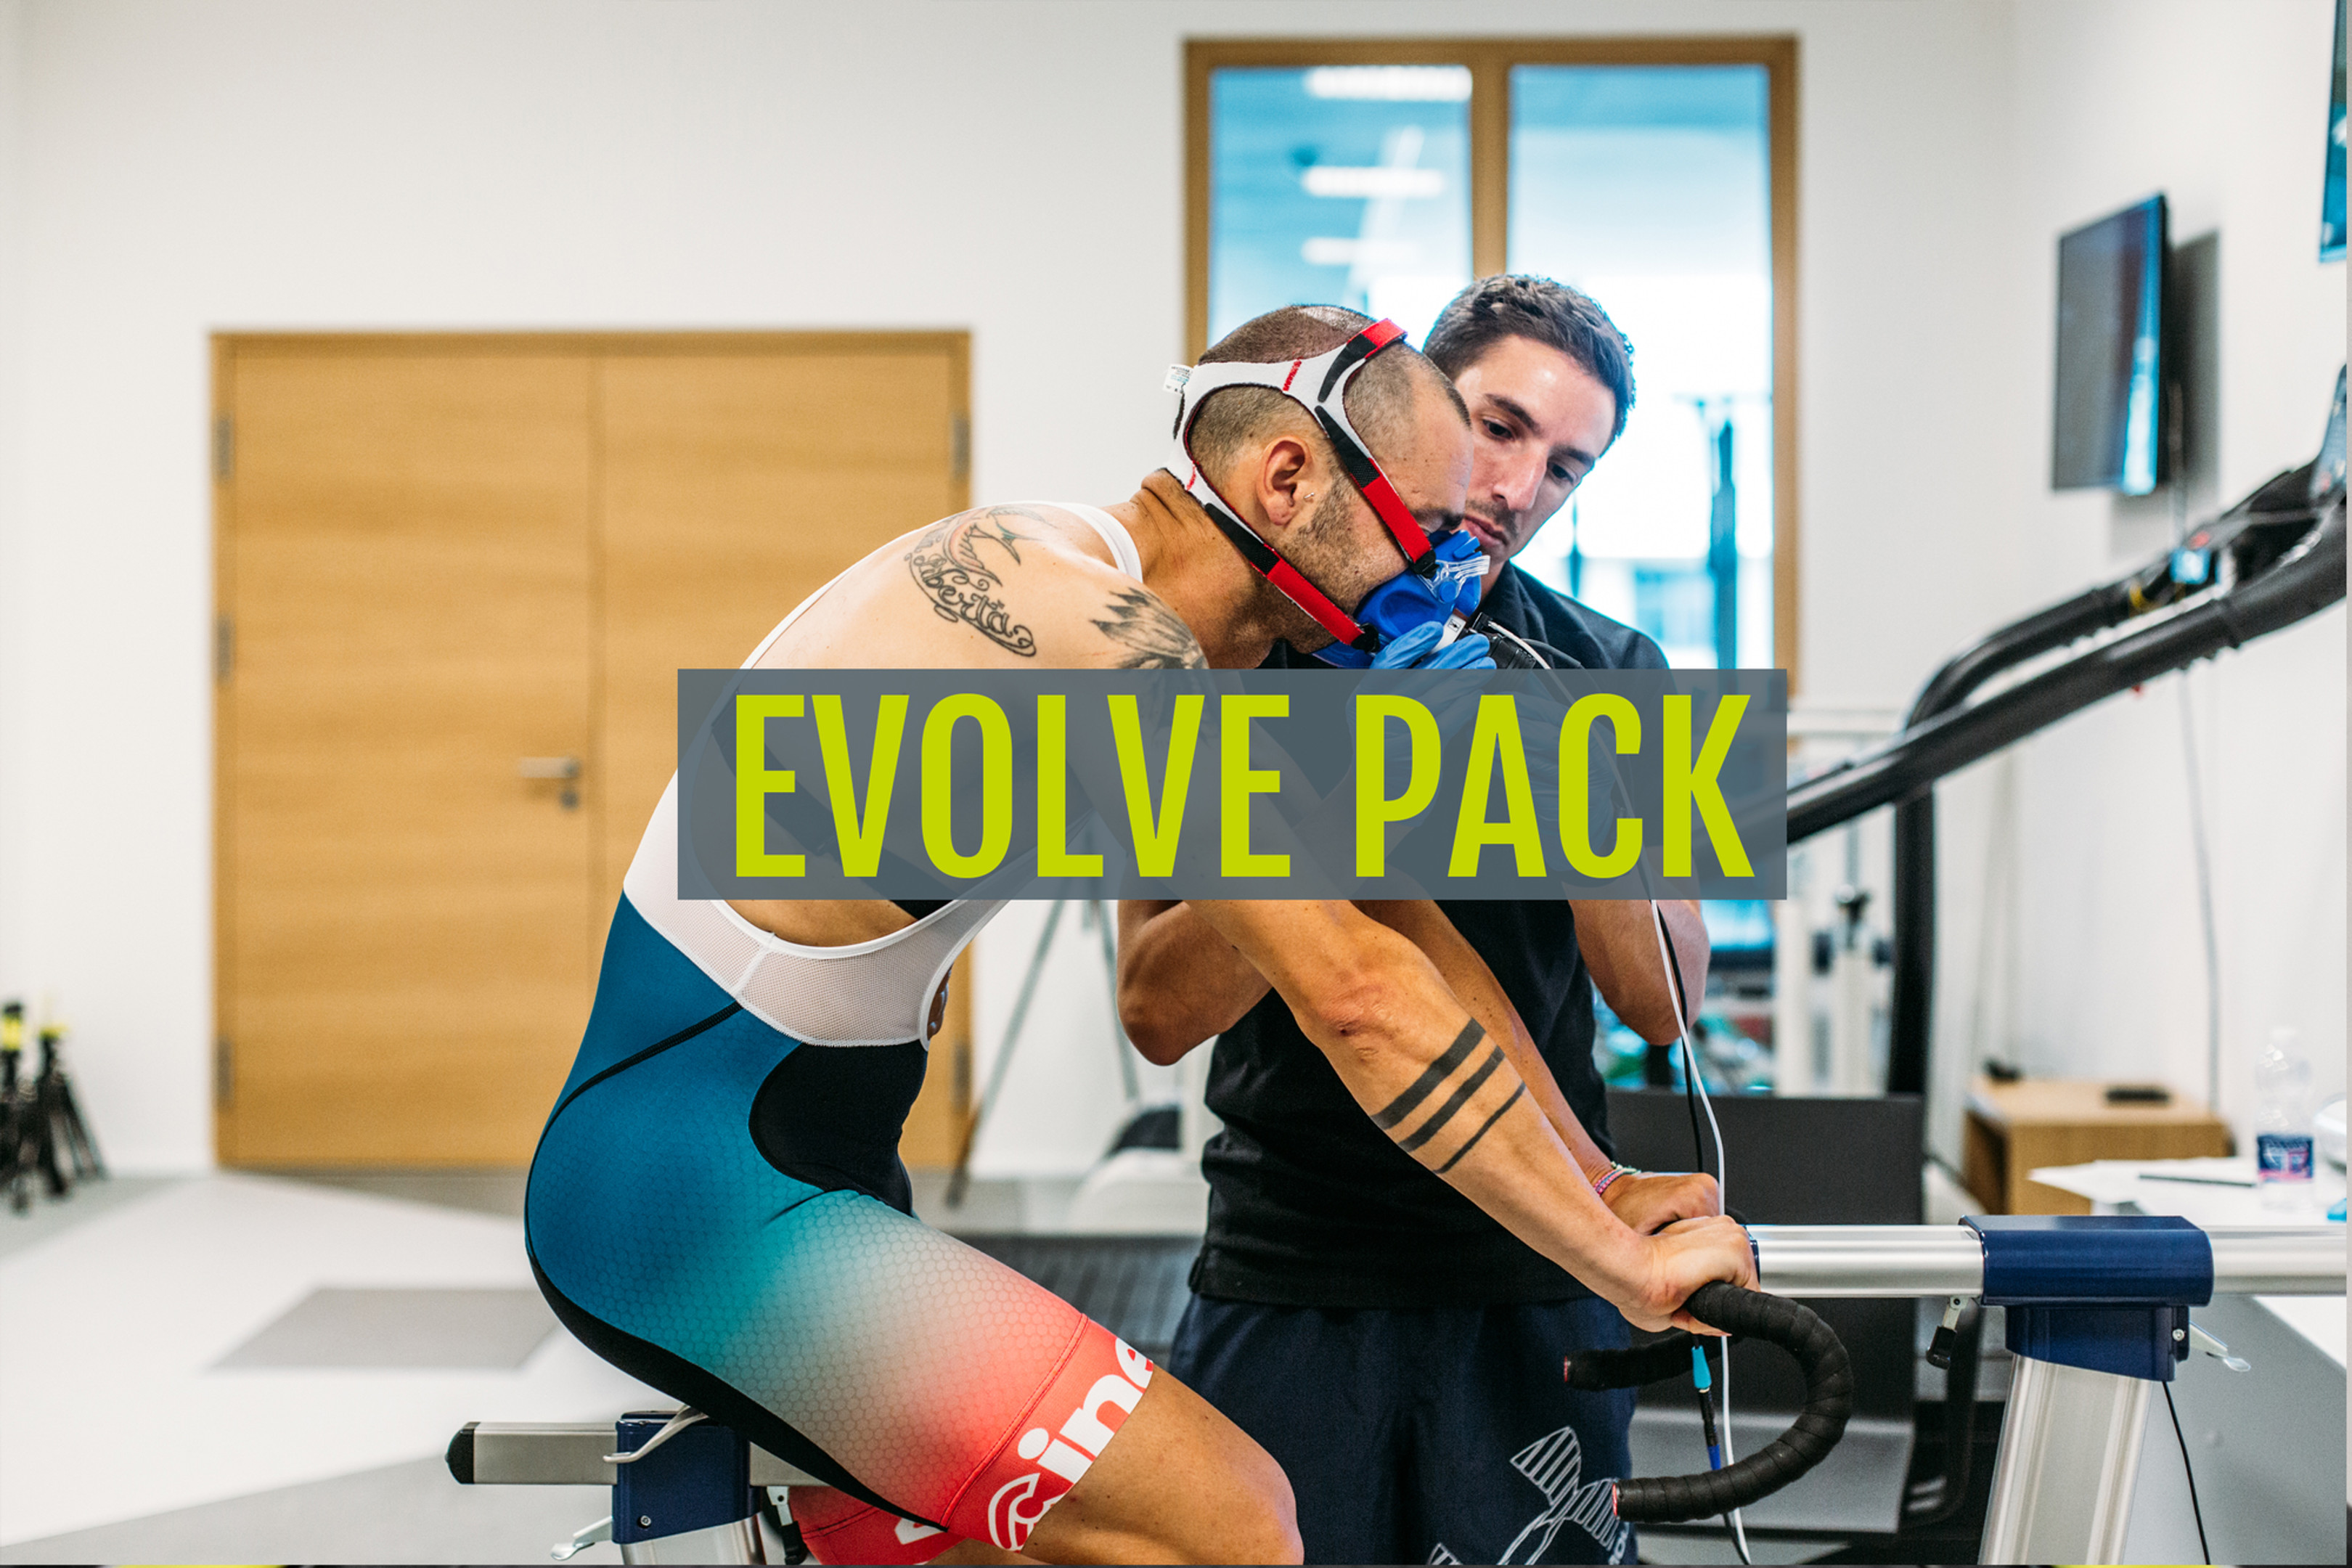 Ciclismo - Evolve Pack